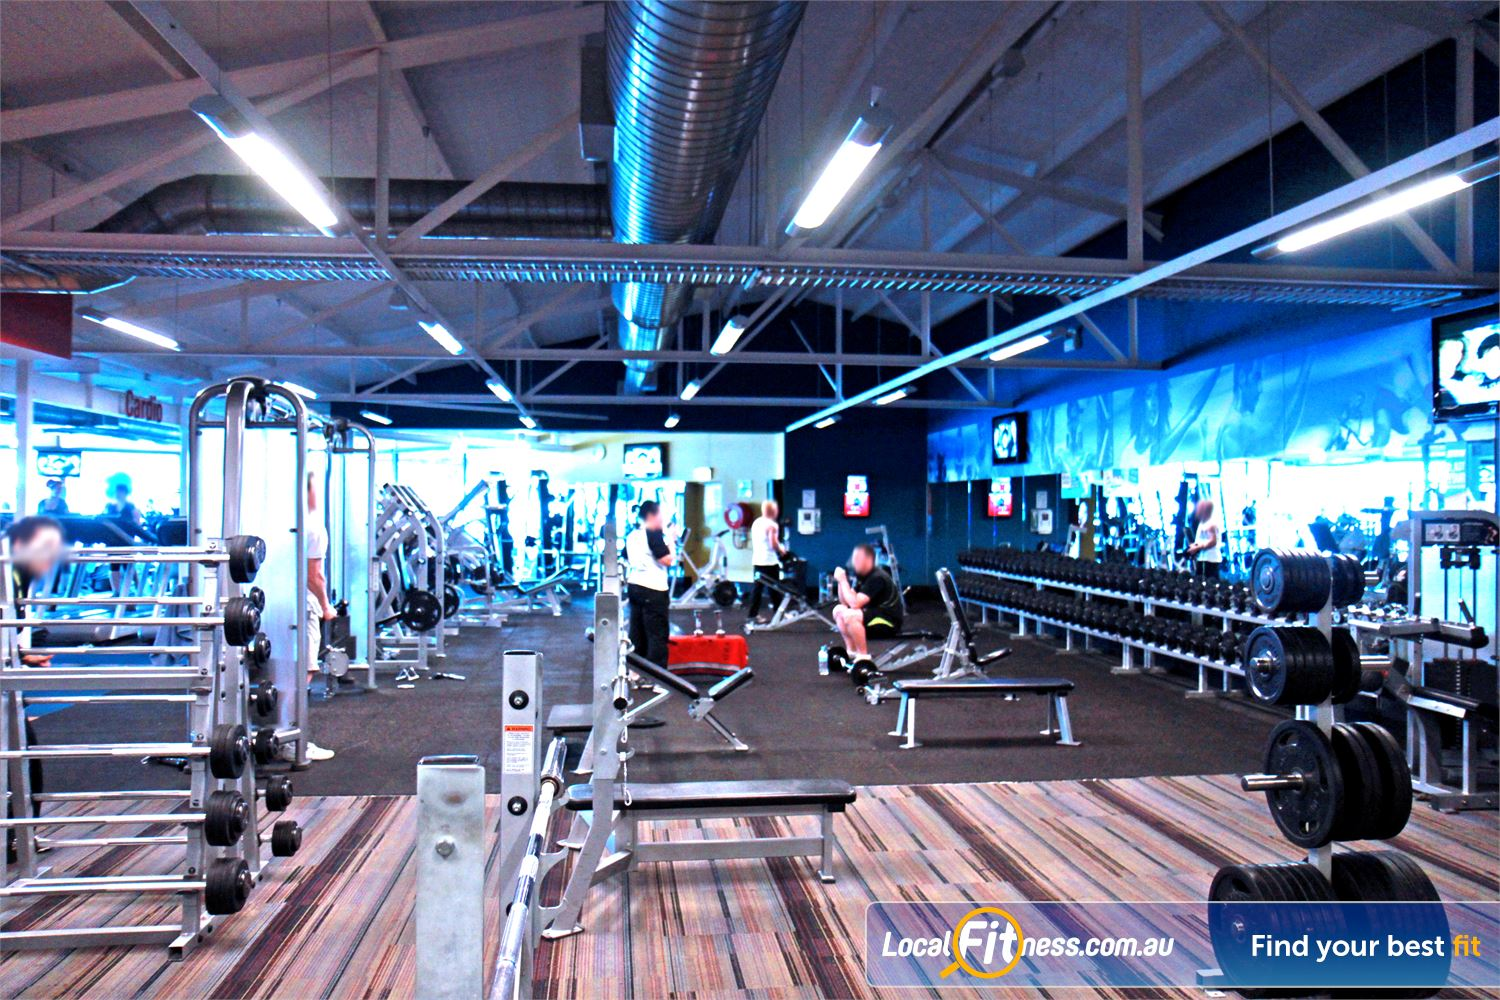 Goodlife Health Clubs Marion Our Marion gym offers an extensive range of dumbbell and barbell equipment.